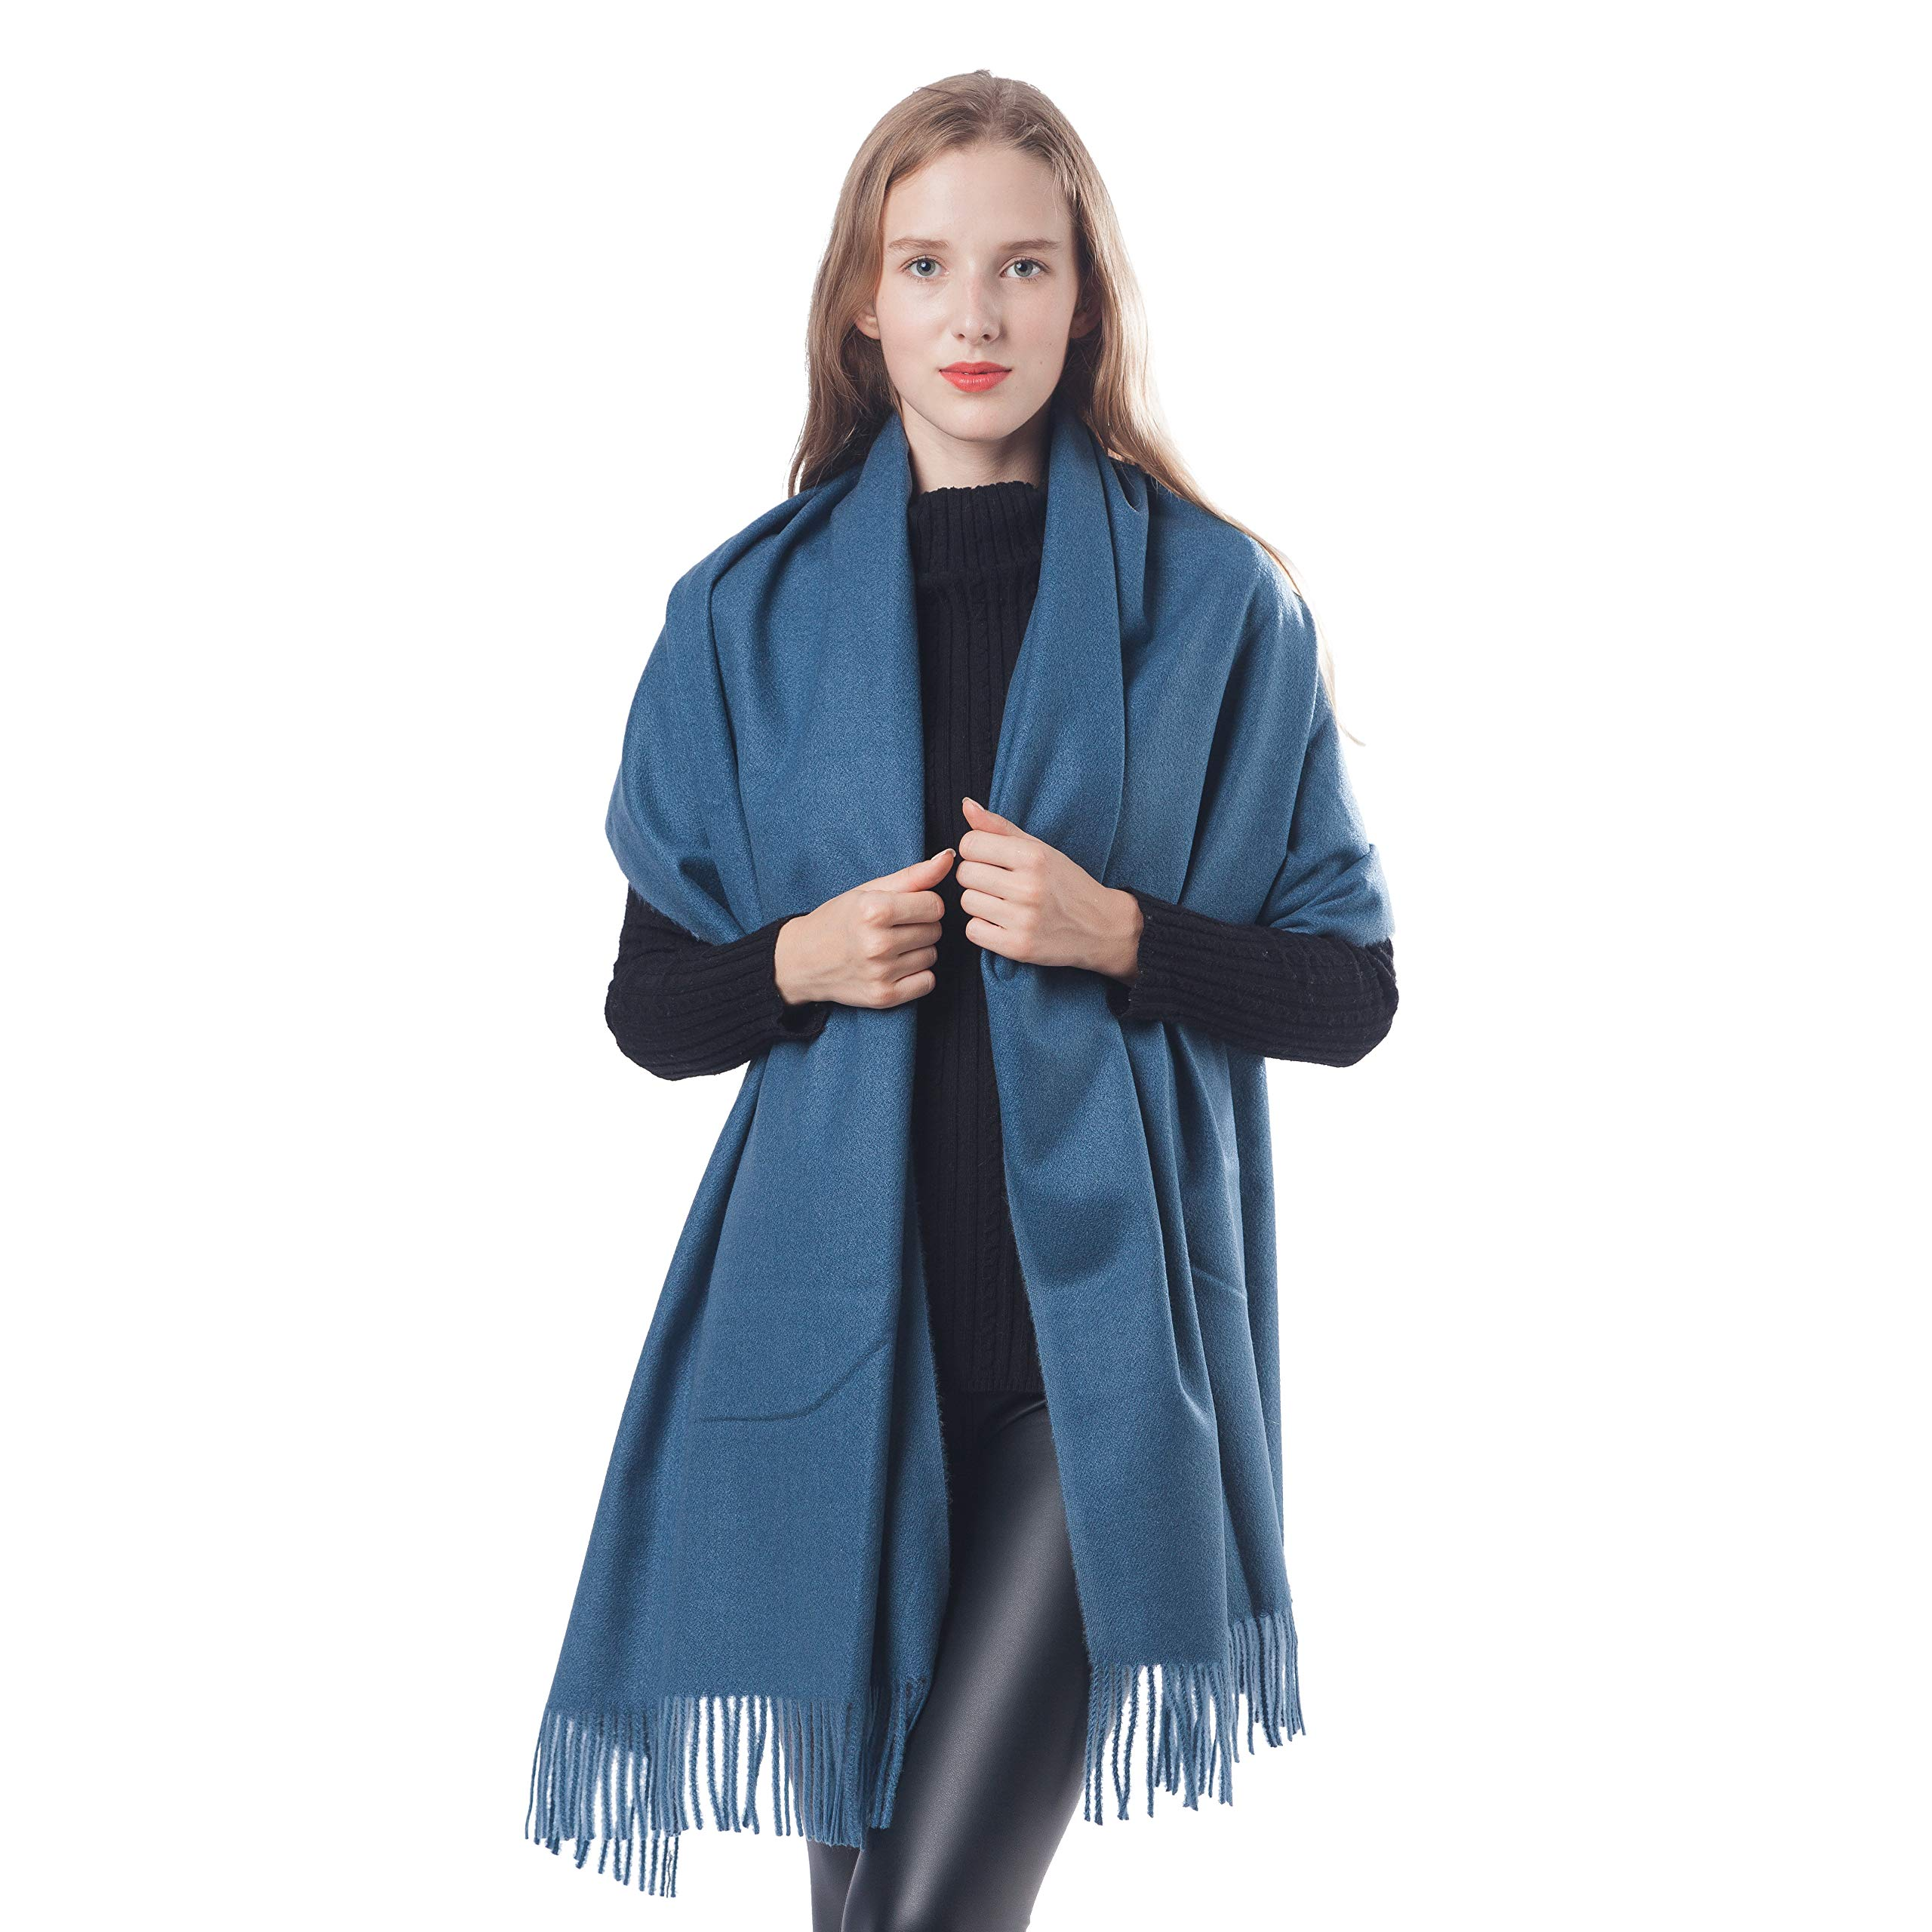 Blue Winter Pashminas Cashmere Scarfs Shawls and Wraps Wool Stole Warm Scarves for Women Lady (1-Denim Blue) by A Sund